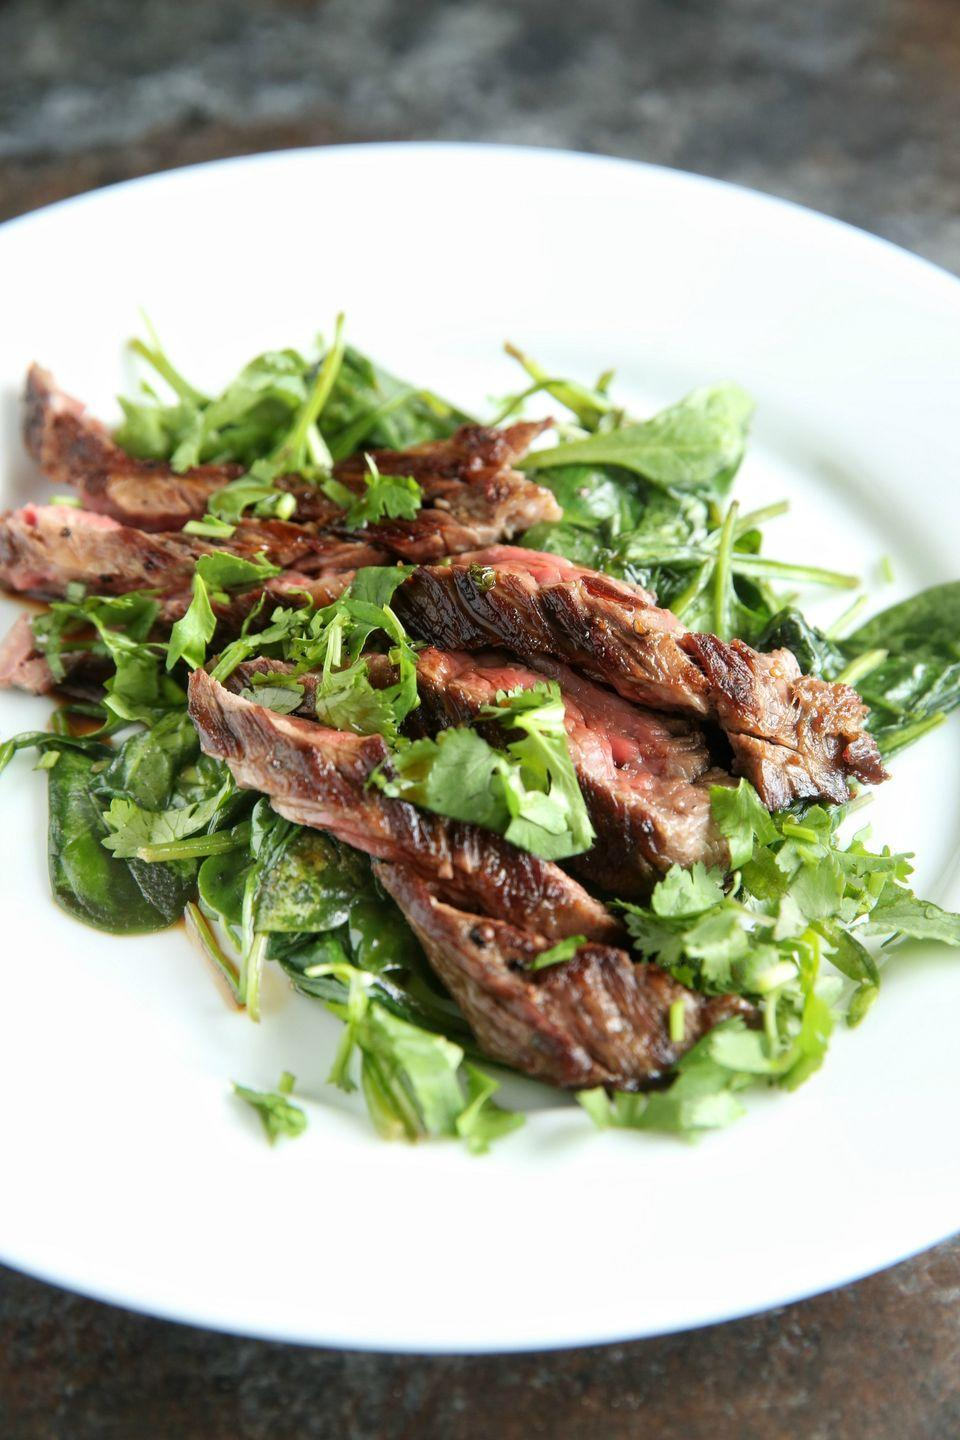 """<p>Forget A1—the herby sauce on this steak is the bomb.</p><p>Get the recipe from <a href=""""https://www.delish.com/cooking/recipe-ideas/recipes/a47387/ginger-garlic-flank-steak-recipe/"""" rel=""""nofollow noopener"""" target=""""_blank"""" data-ylk=""""slk:Delish"""" class=""""link rapid-noclick-resp"""">Delish</a>. </p>"""